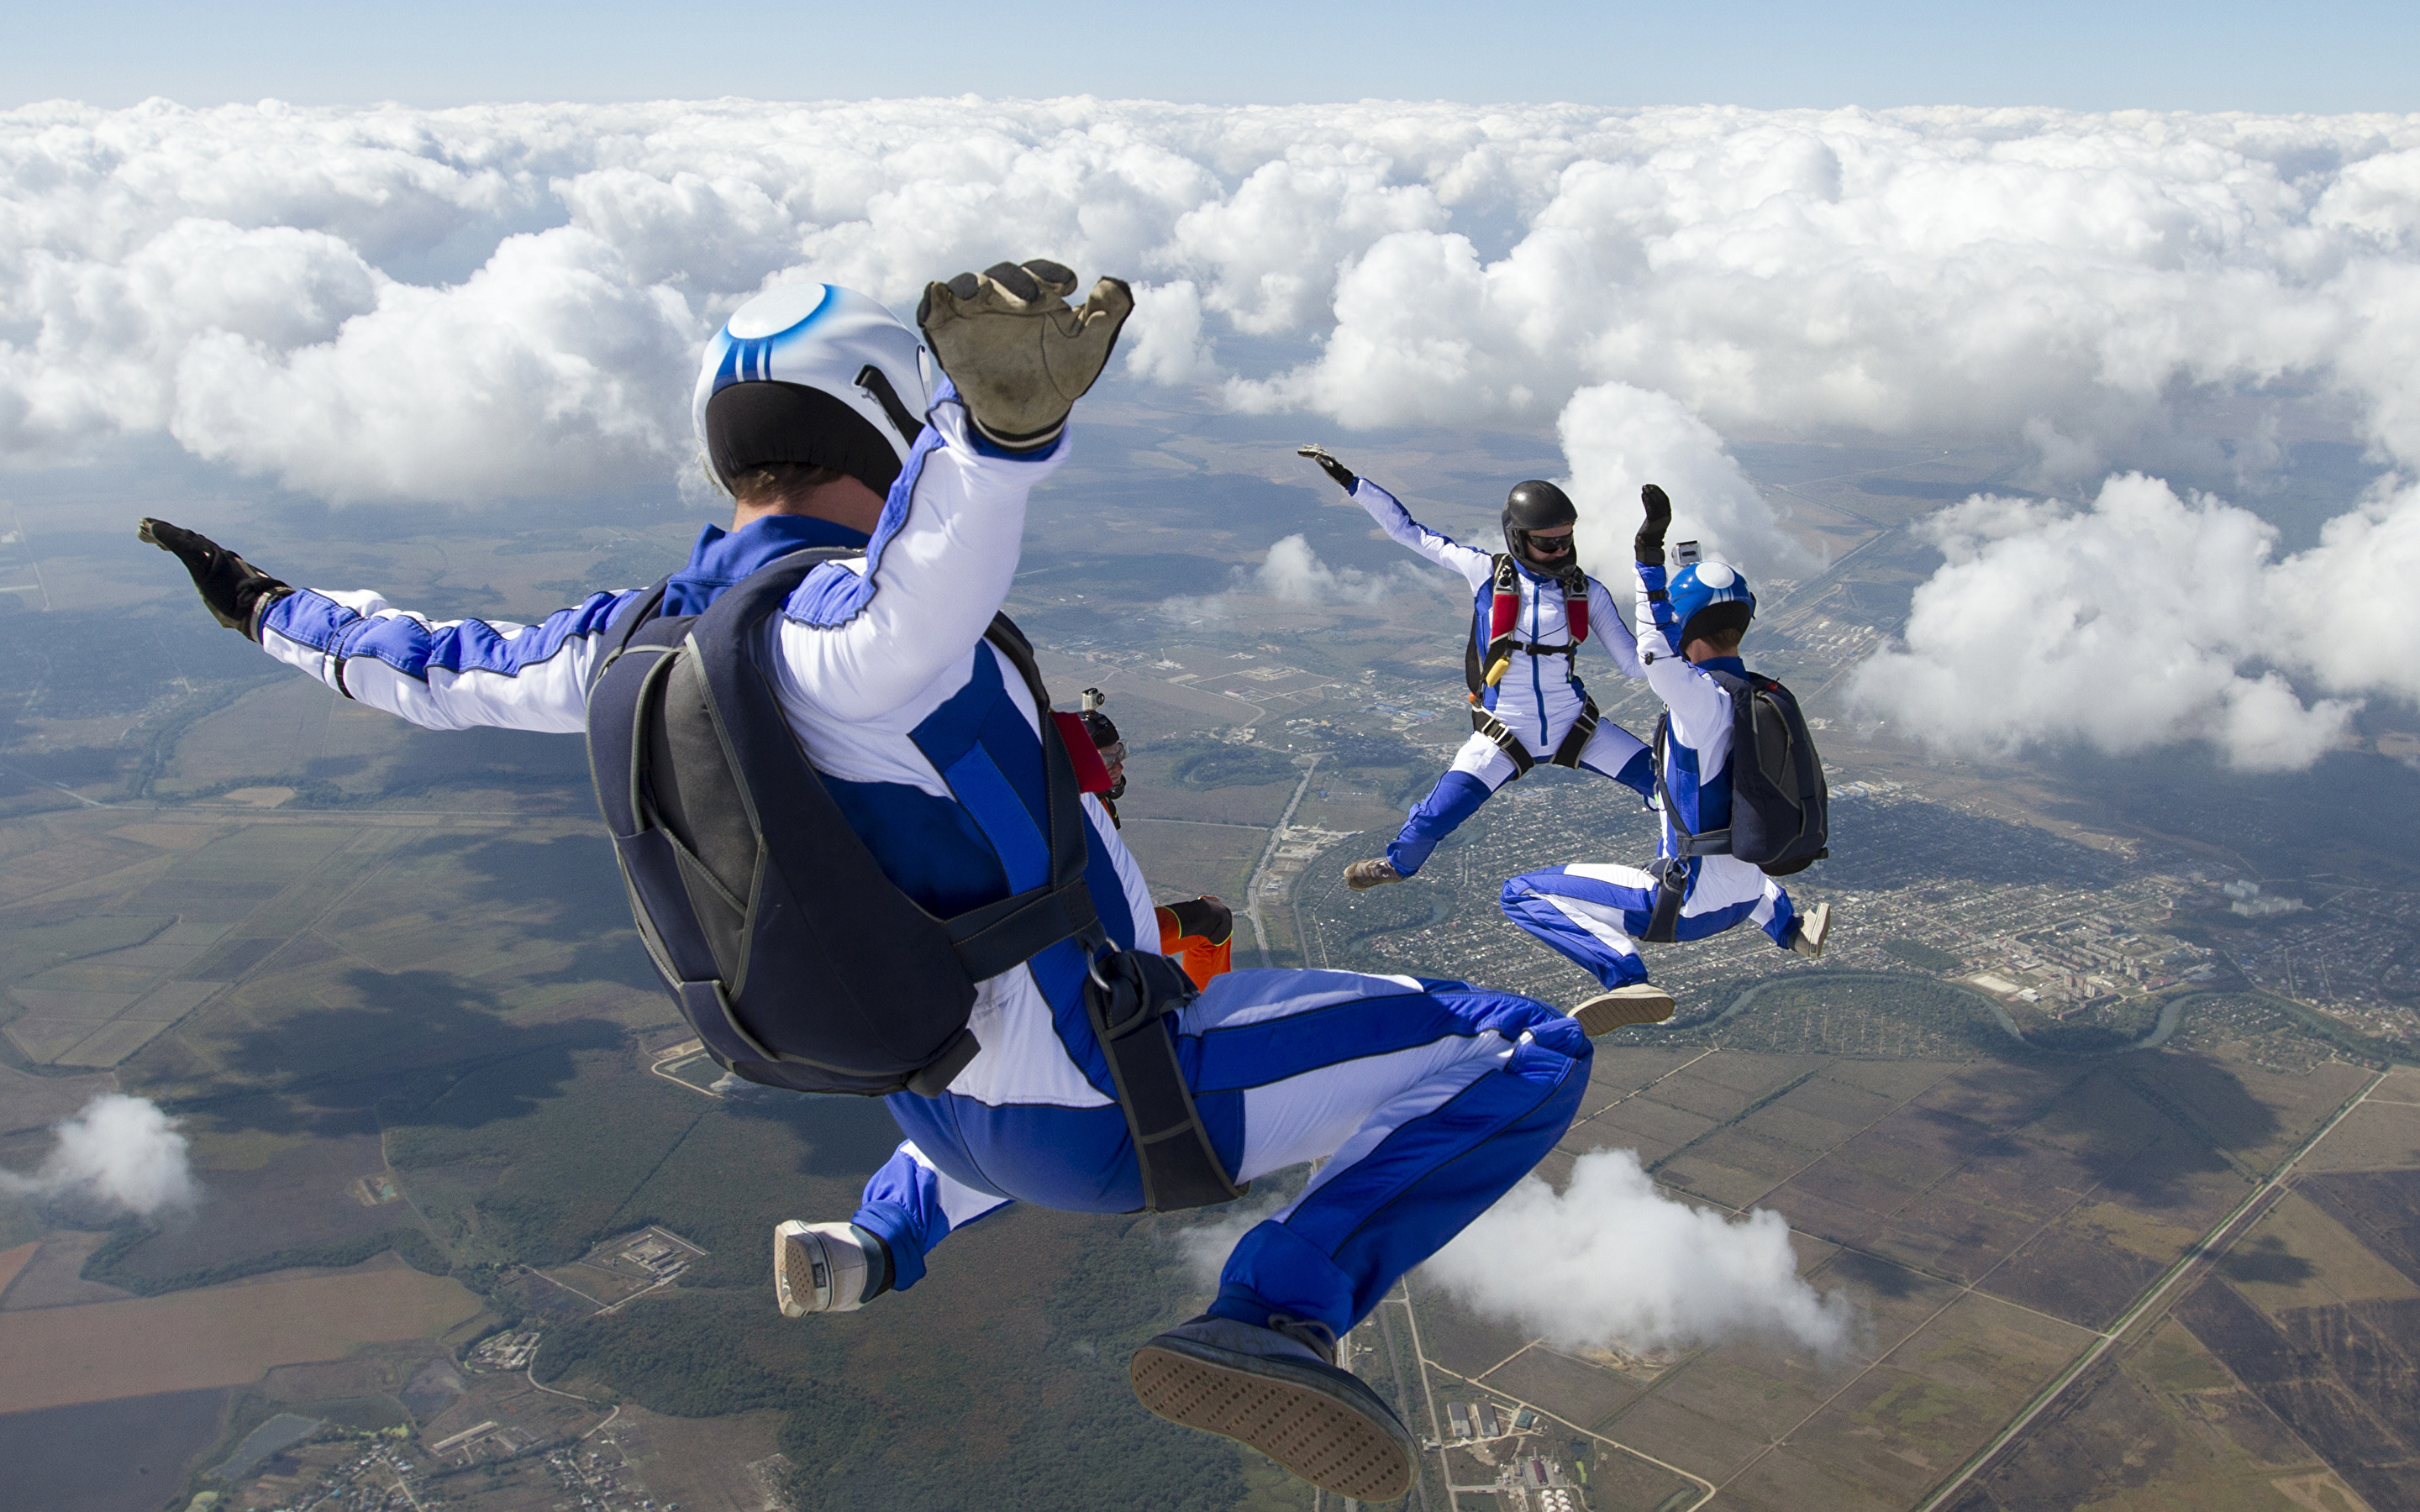 Wallpapers Sport Parachuting skydiving Sky Uniform Clouds 2880x1800